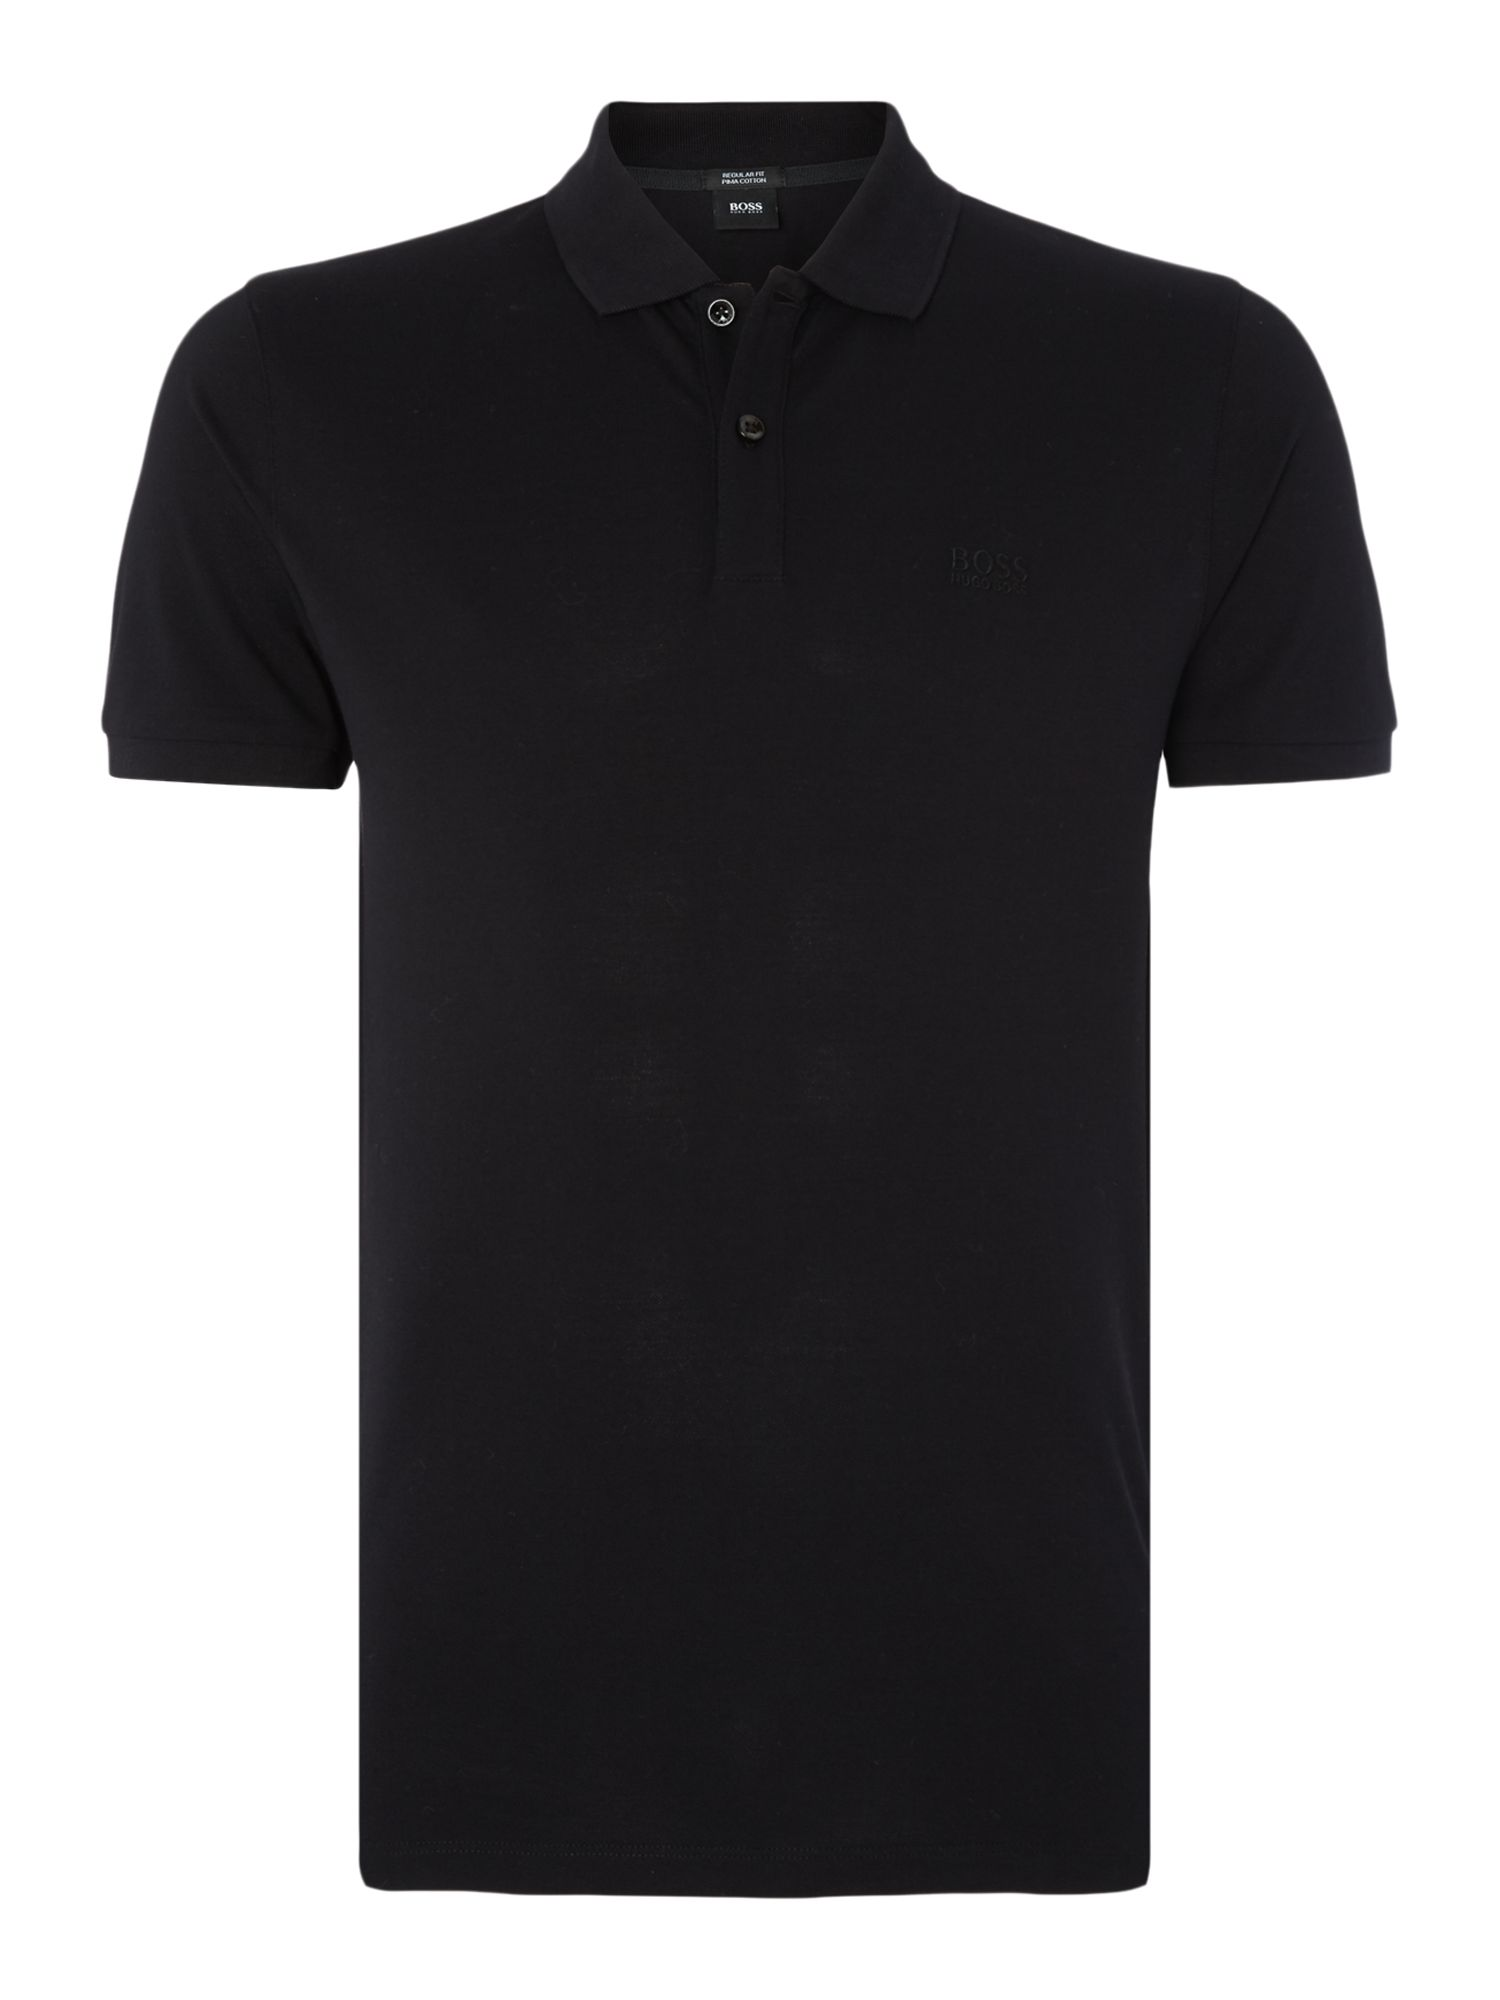 Men's Hugo Boss Pallas regular fit short sleeve logo polo shirt, Black